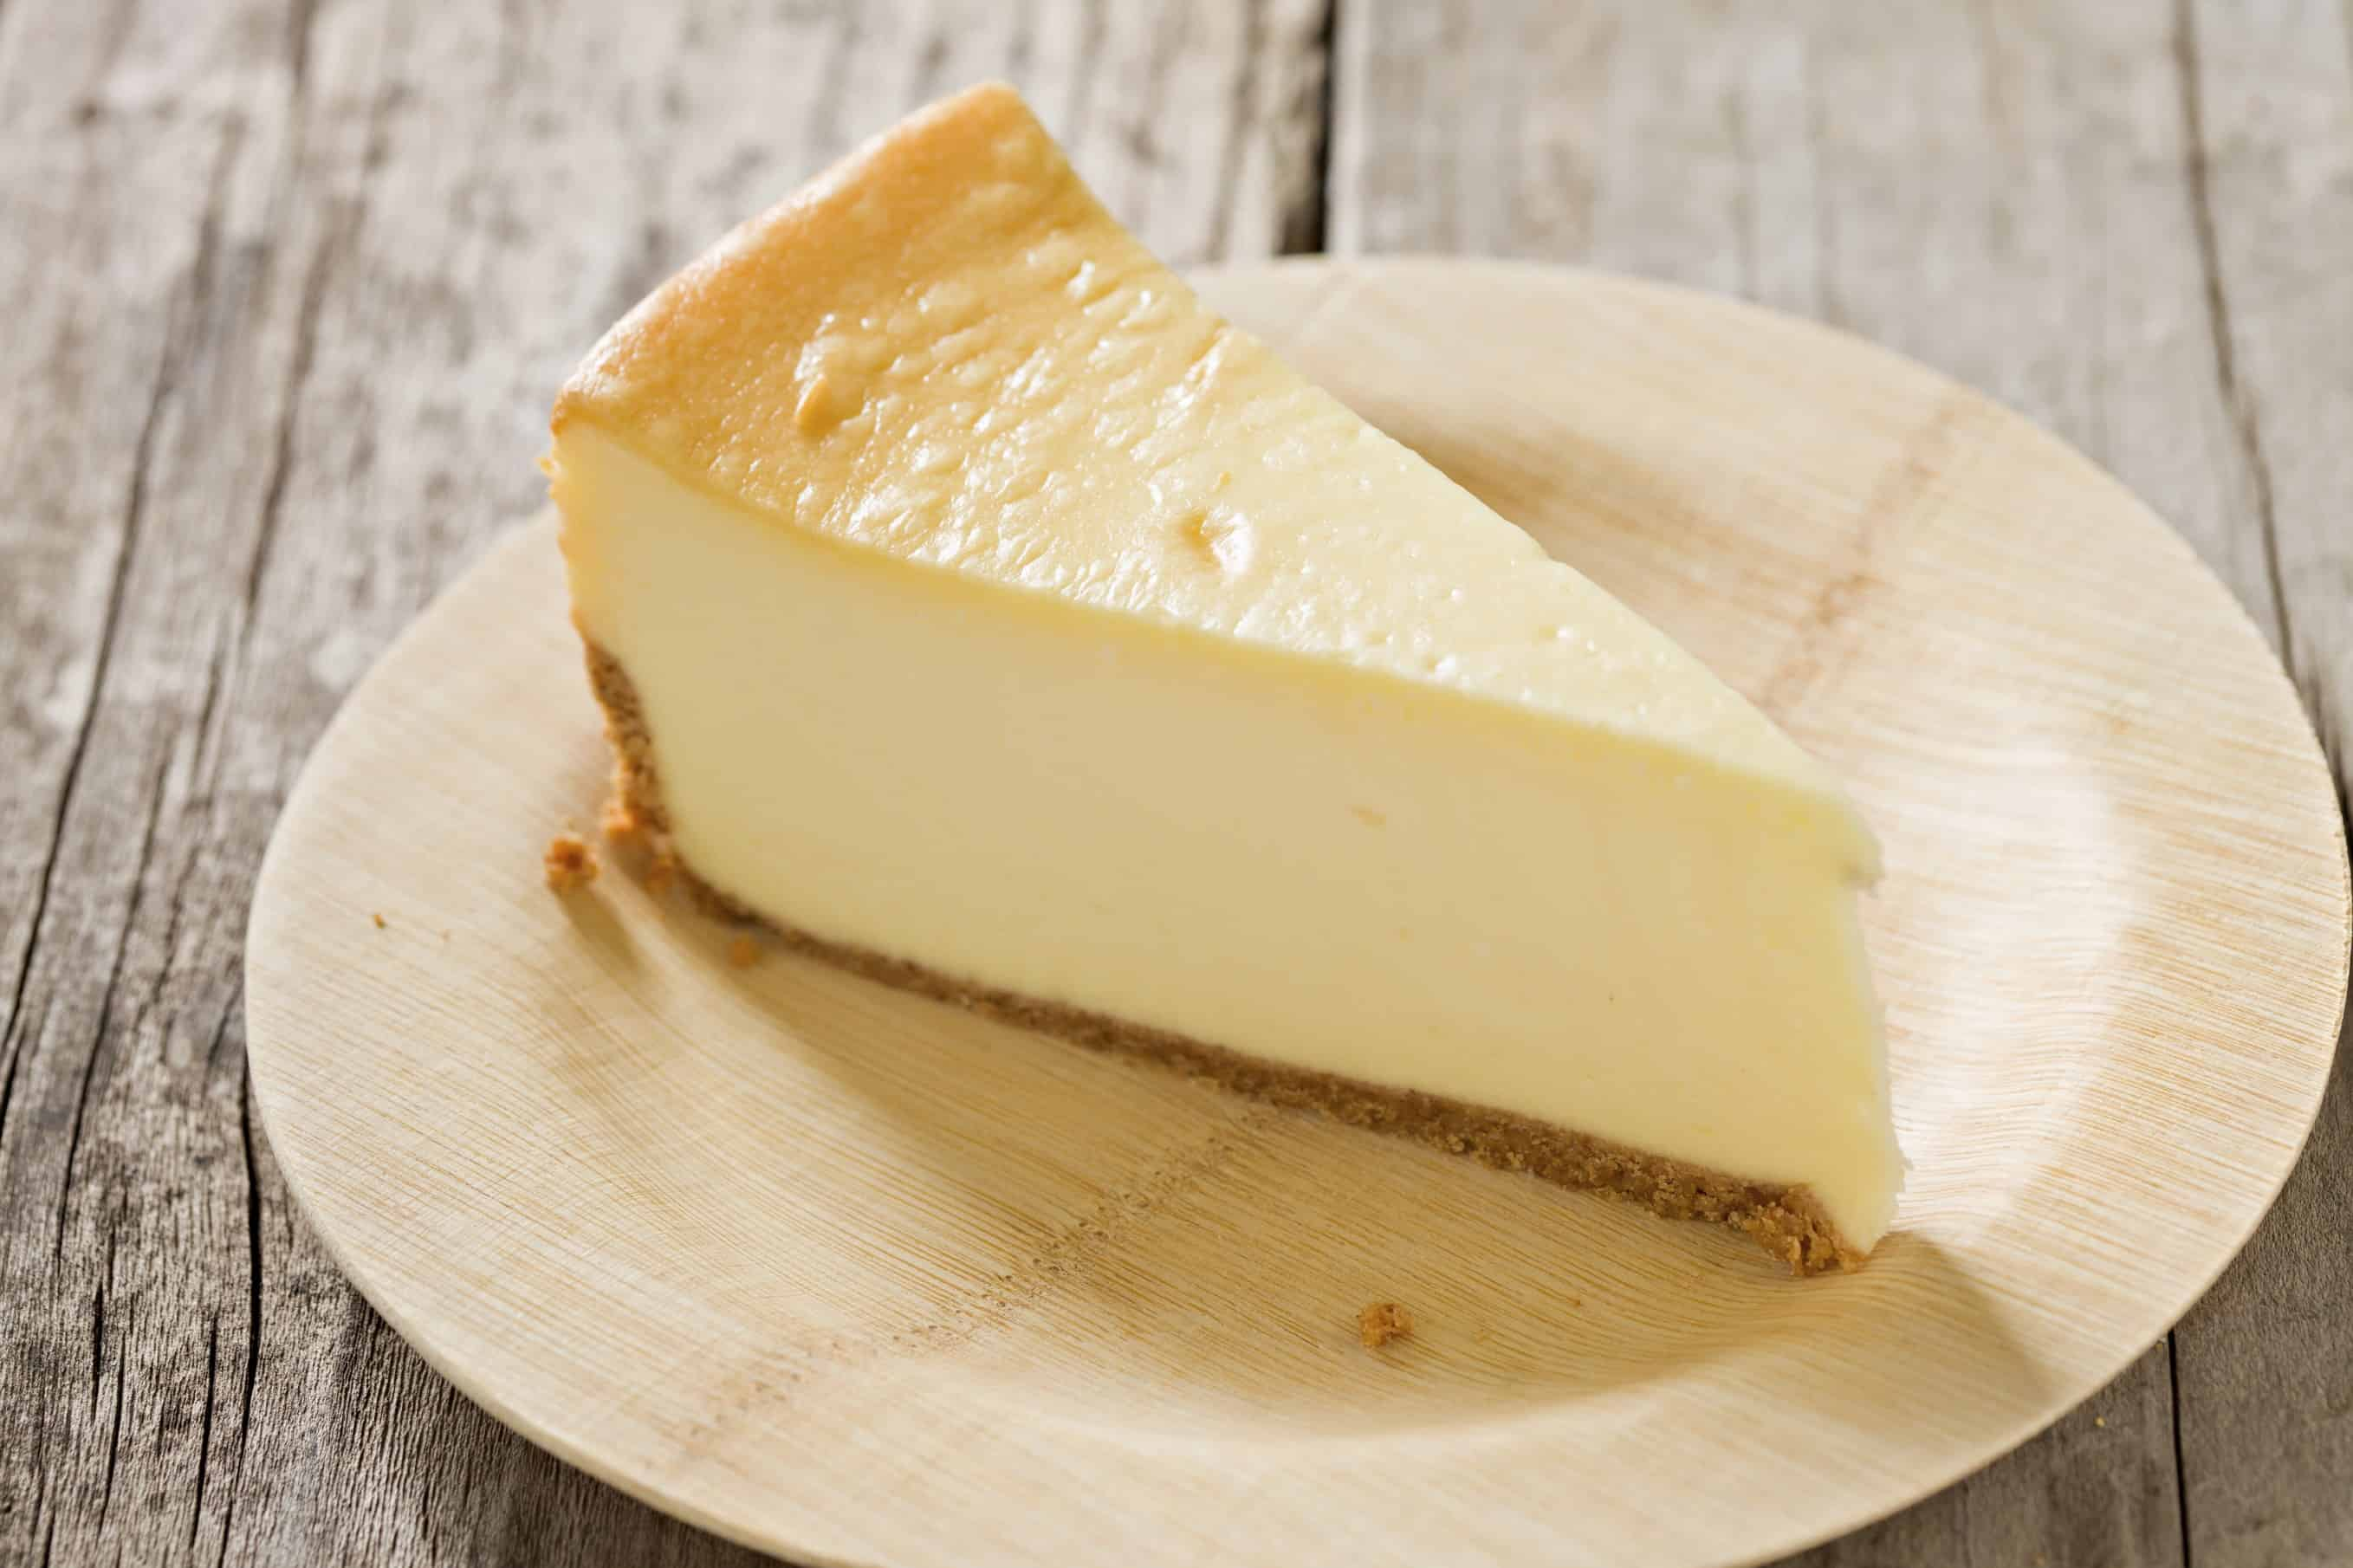 New York Cheesecake III